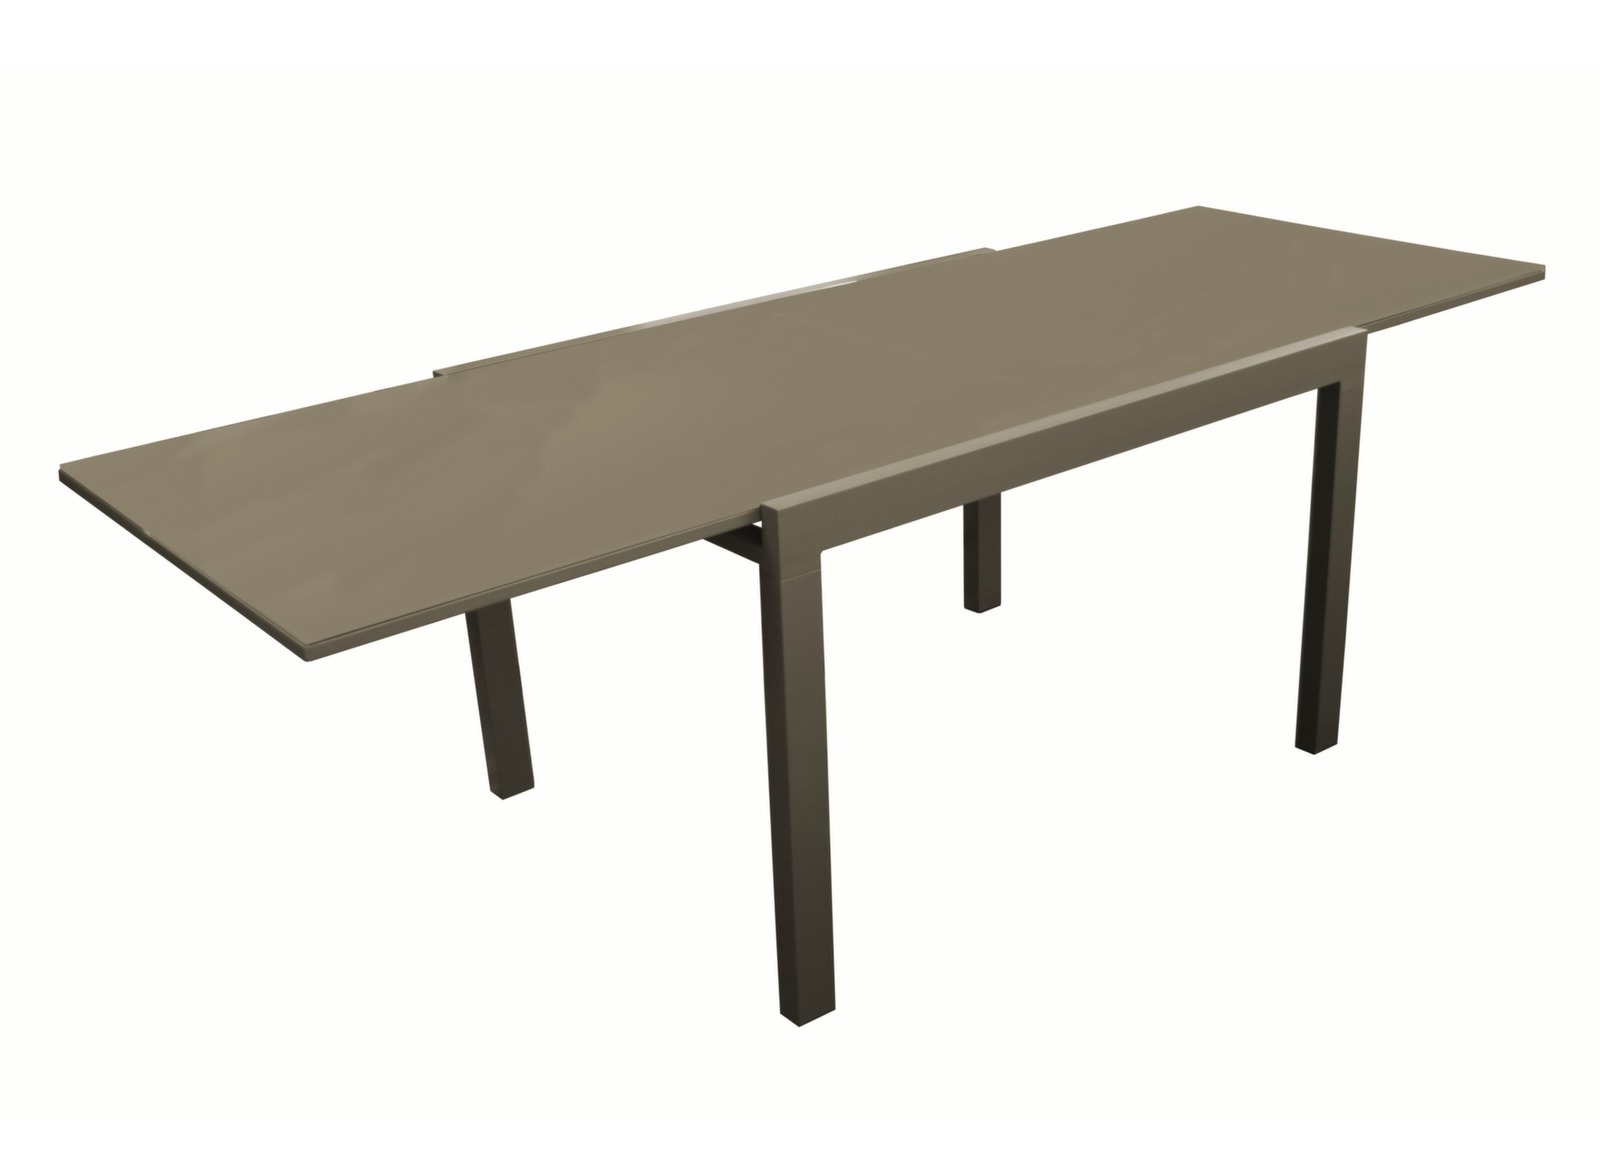 table de jardin lise 200 300cm gamme aliz proloisirs. Black Bedroom Furniture Sets. Home Design Ideas